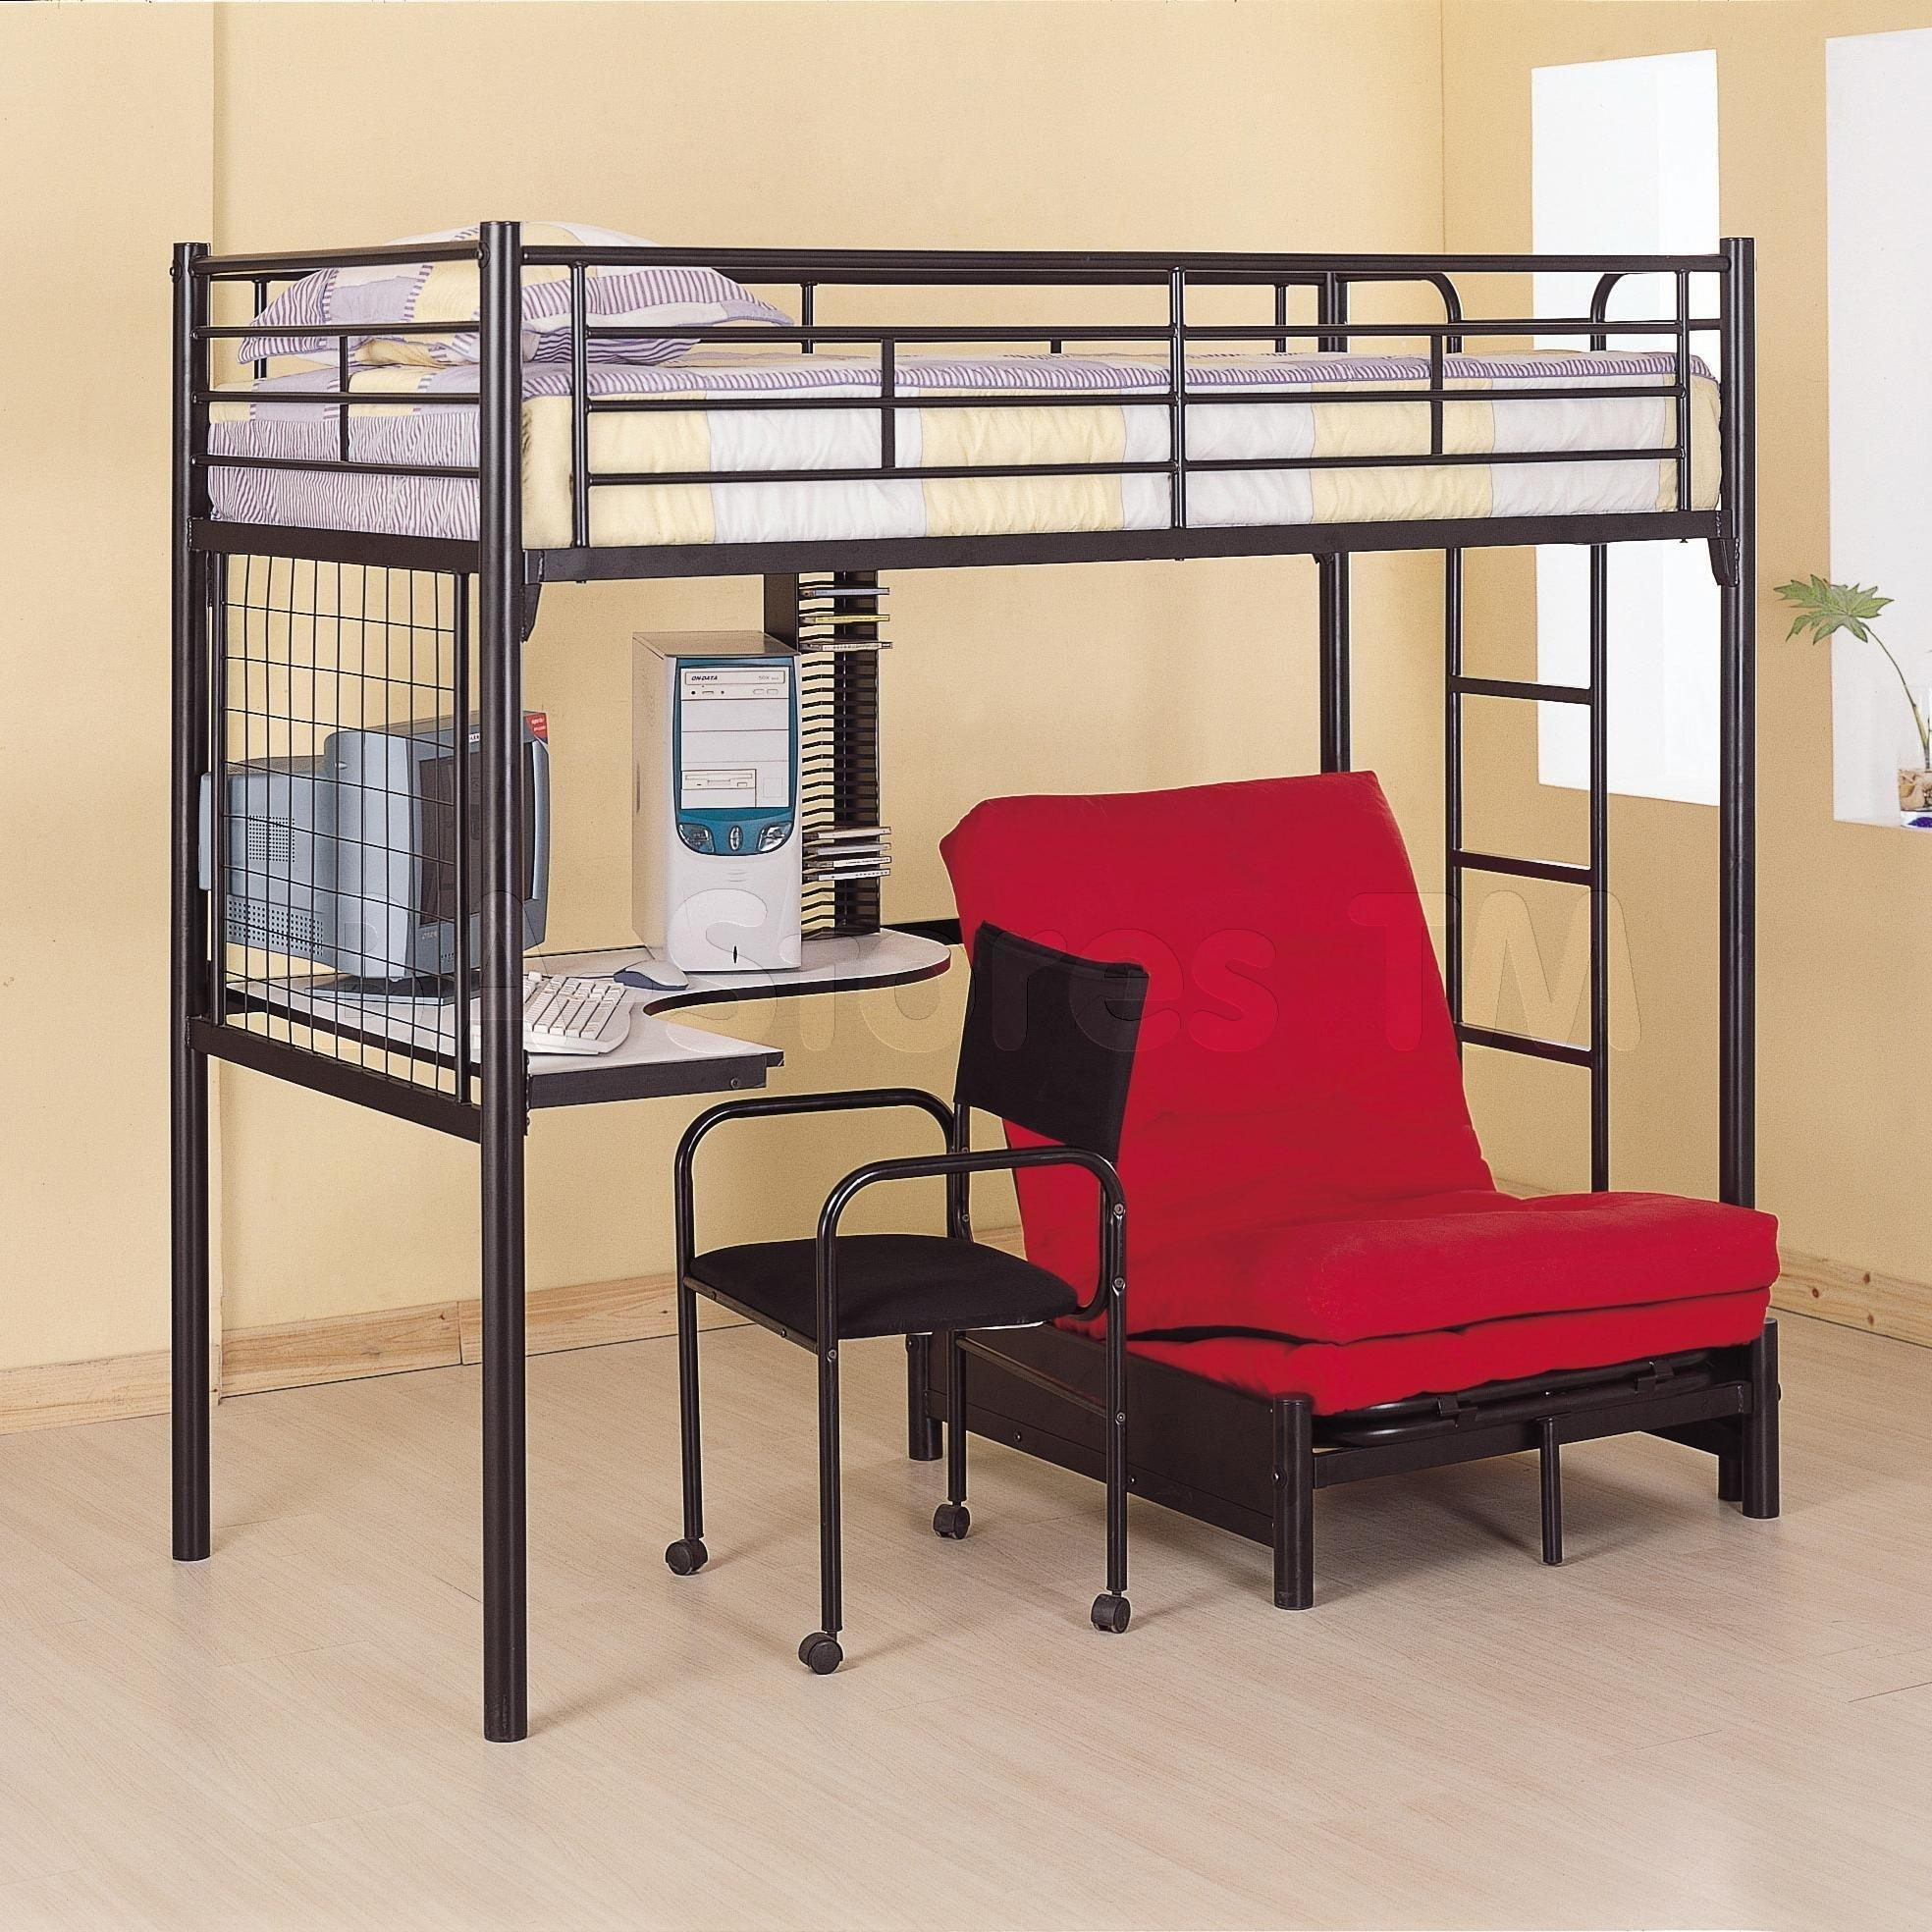 Bunk Bed With Sofa Underneath – Bürostuhl In Bunk Bed With Sofas Underneath (Image 10 of 20)